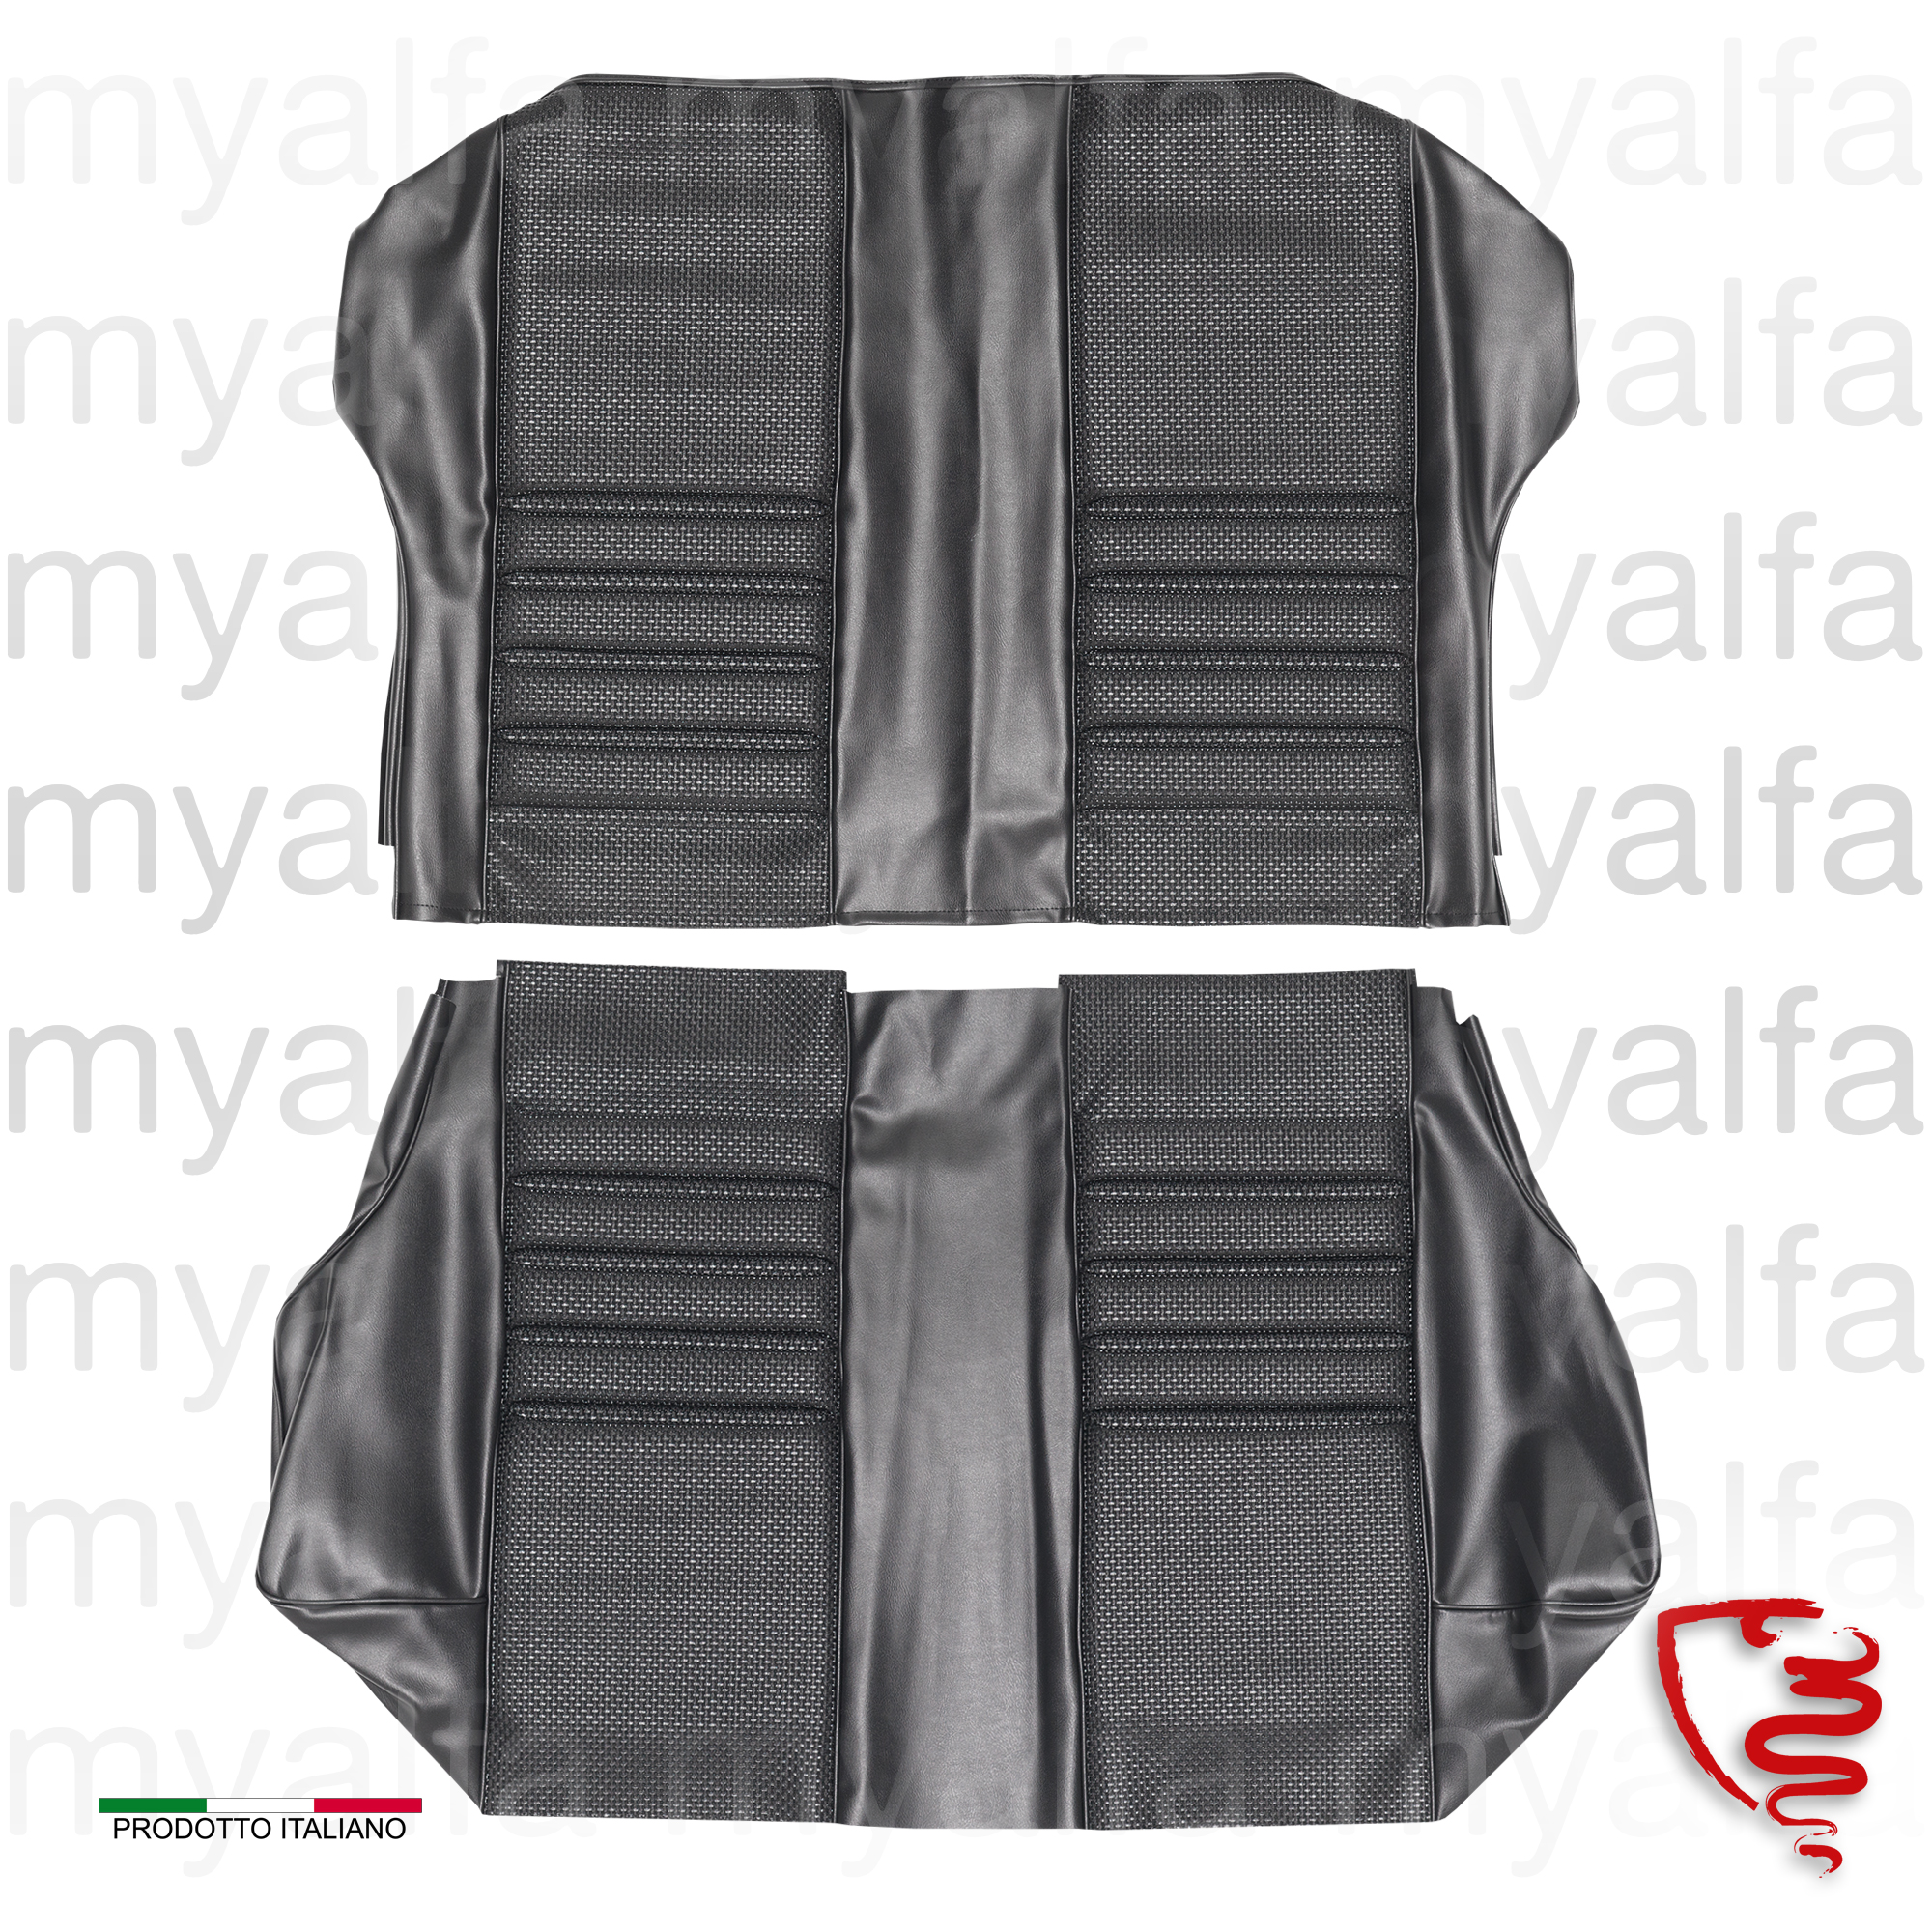 Covers rear seats 1750 GTV 1st series - Black for 105/115, Coupe, 1750, Interior, Seats, Seat covers